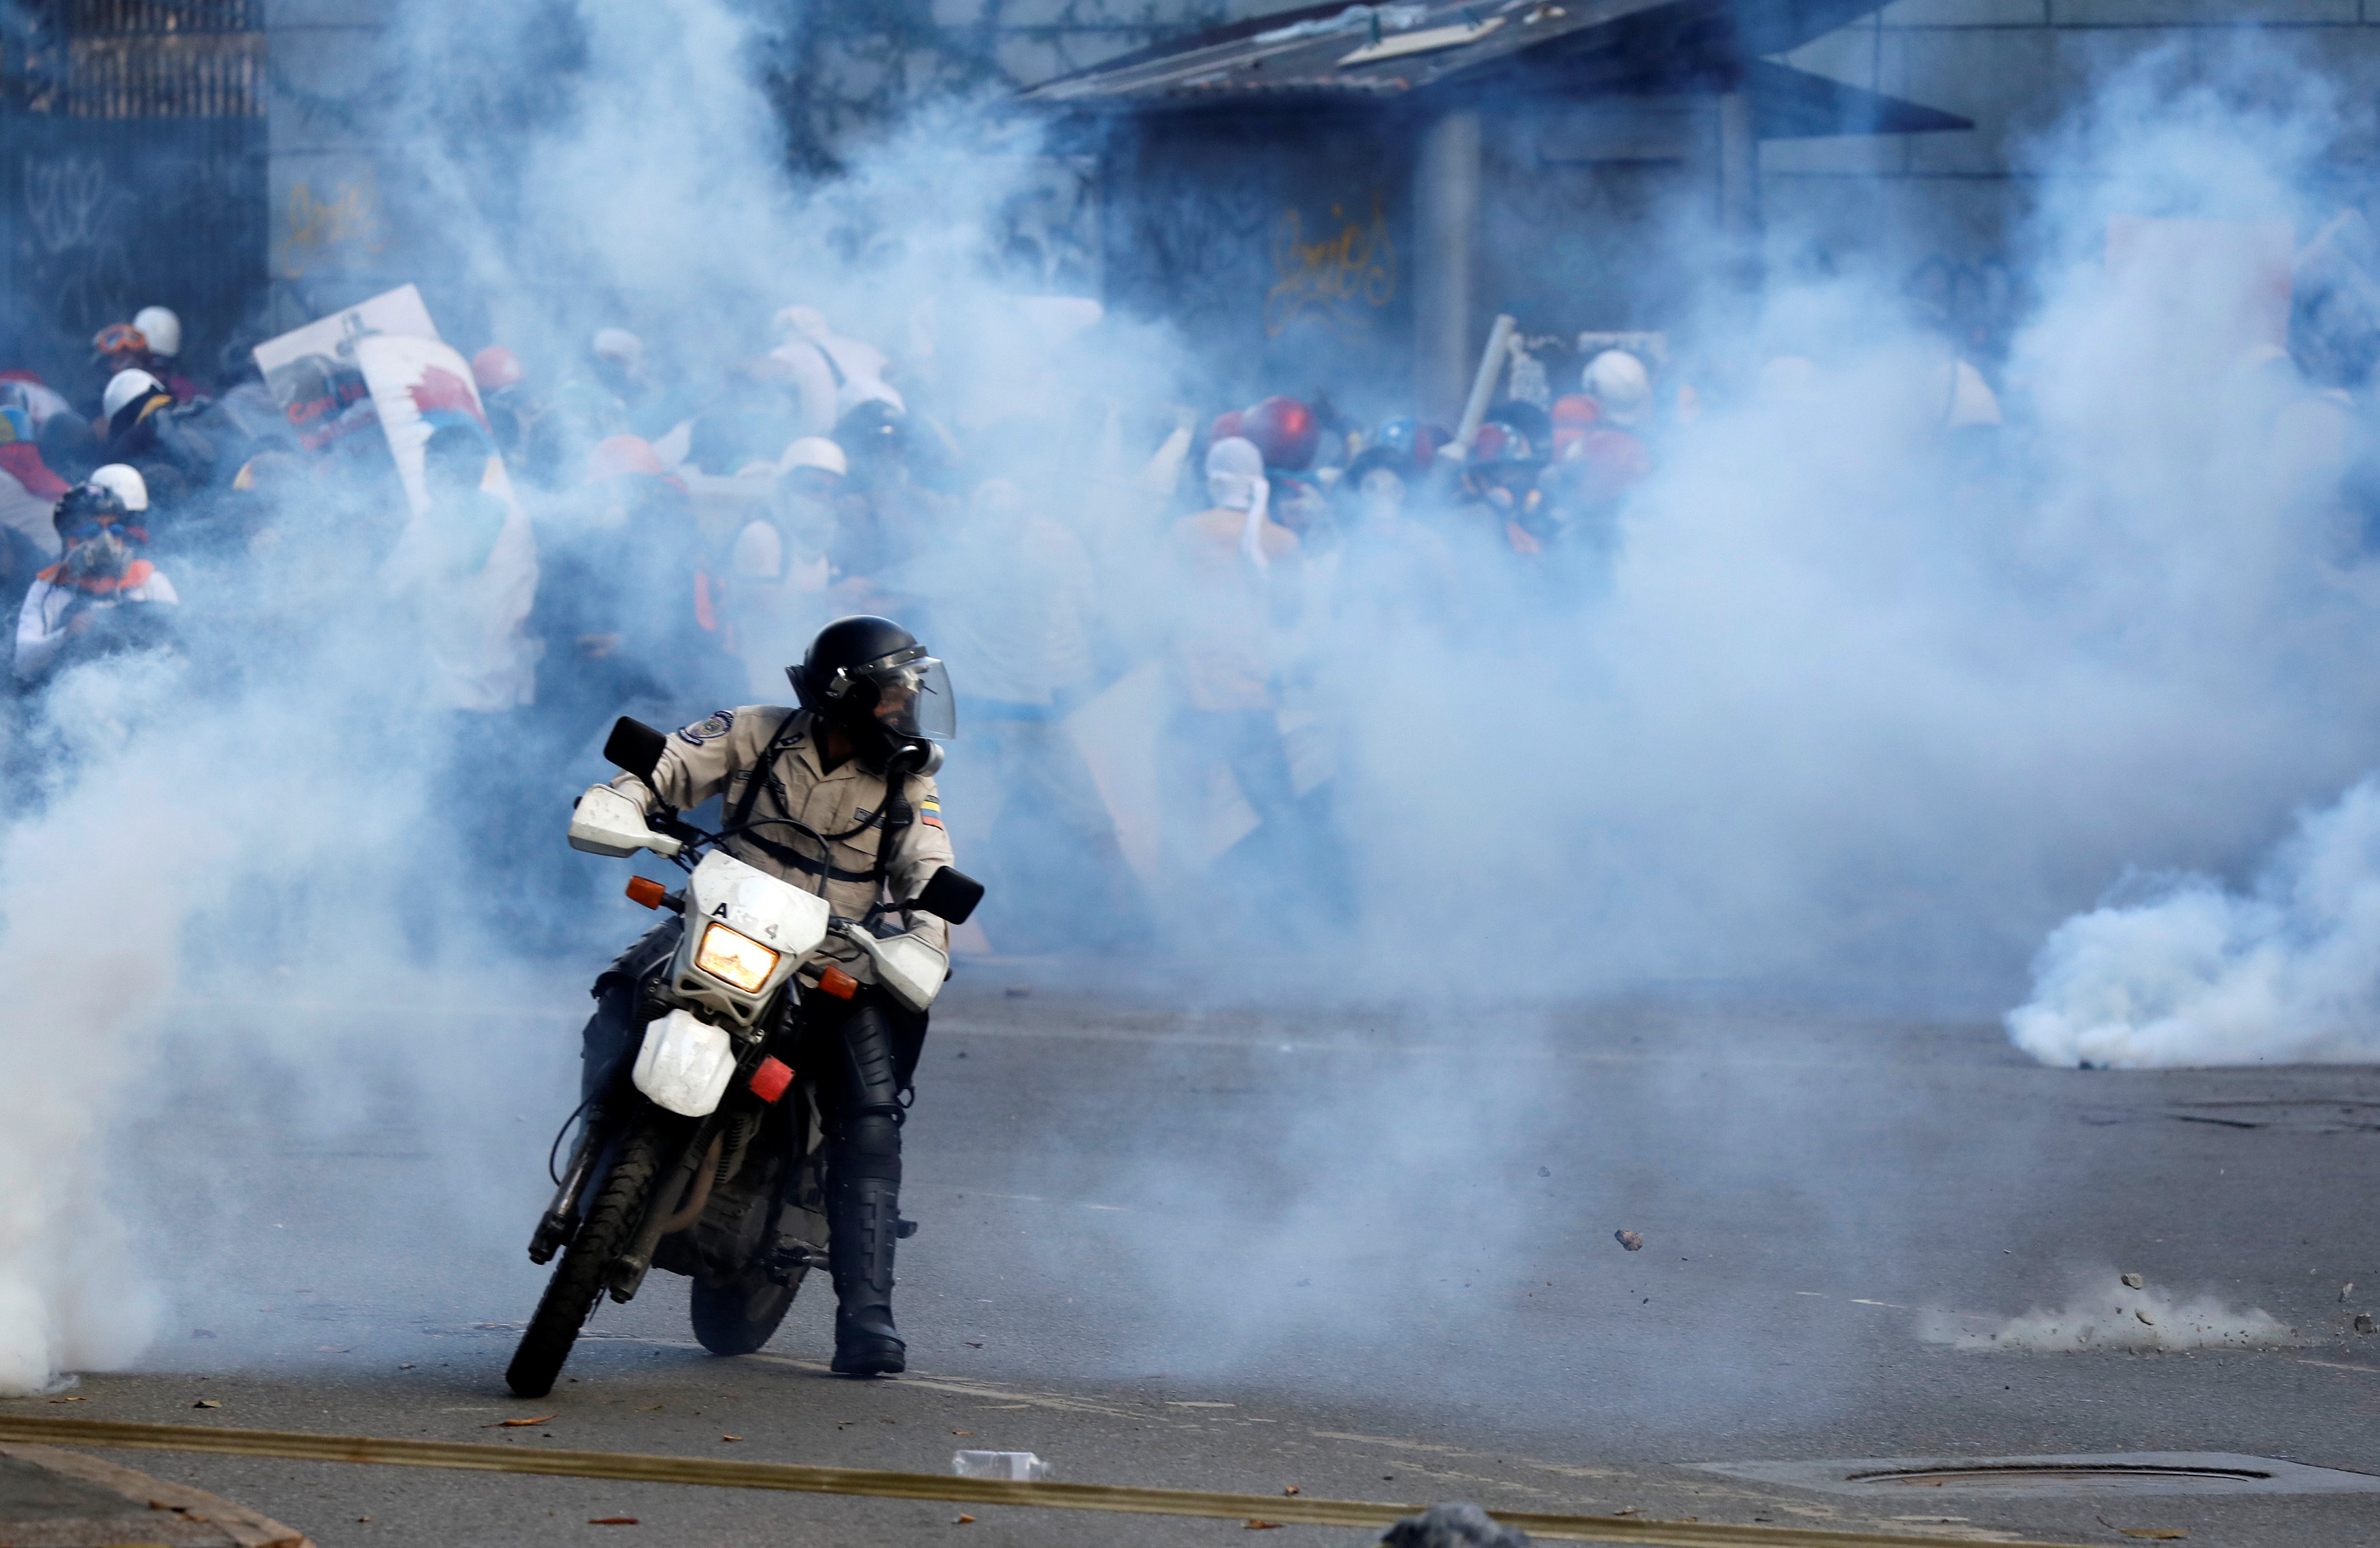 A riot security forces member rides his motorcycle as demonstrators clash with riot security forces while rallying against Venezuela's President Nicolas Maduro in Caracas, Venezuela, June 10, 2017. REUTERS/Carlos Garcia Rawlins